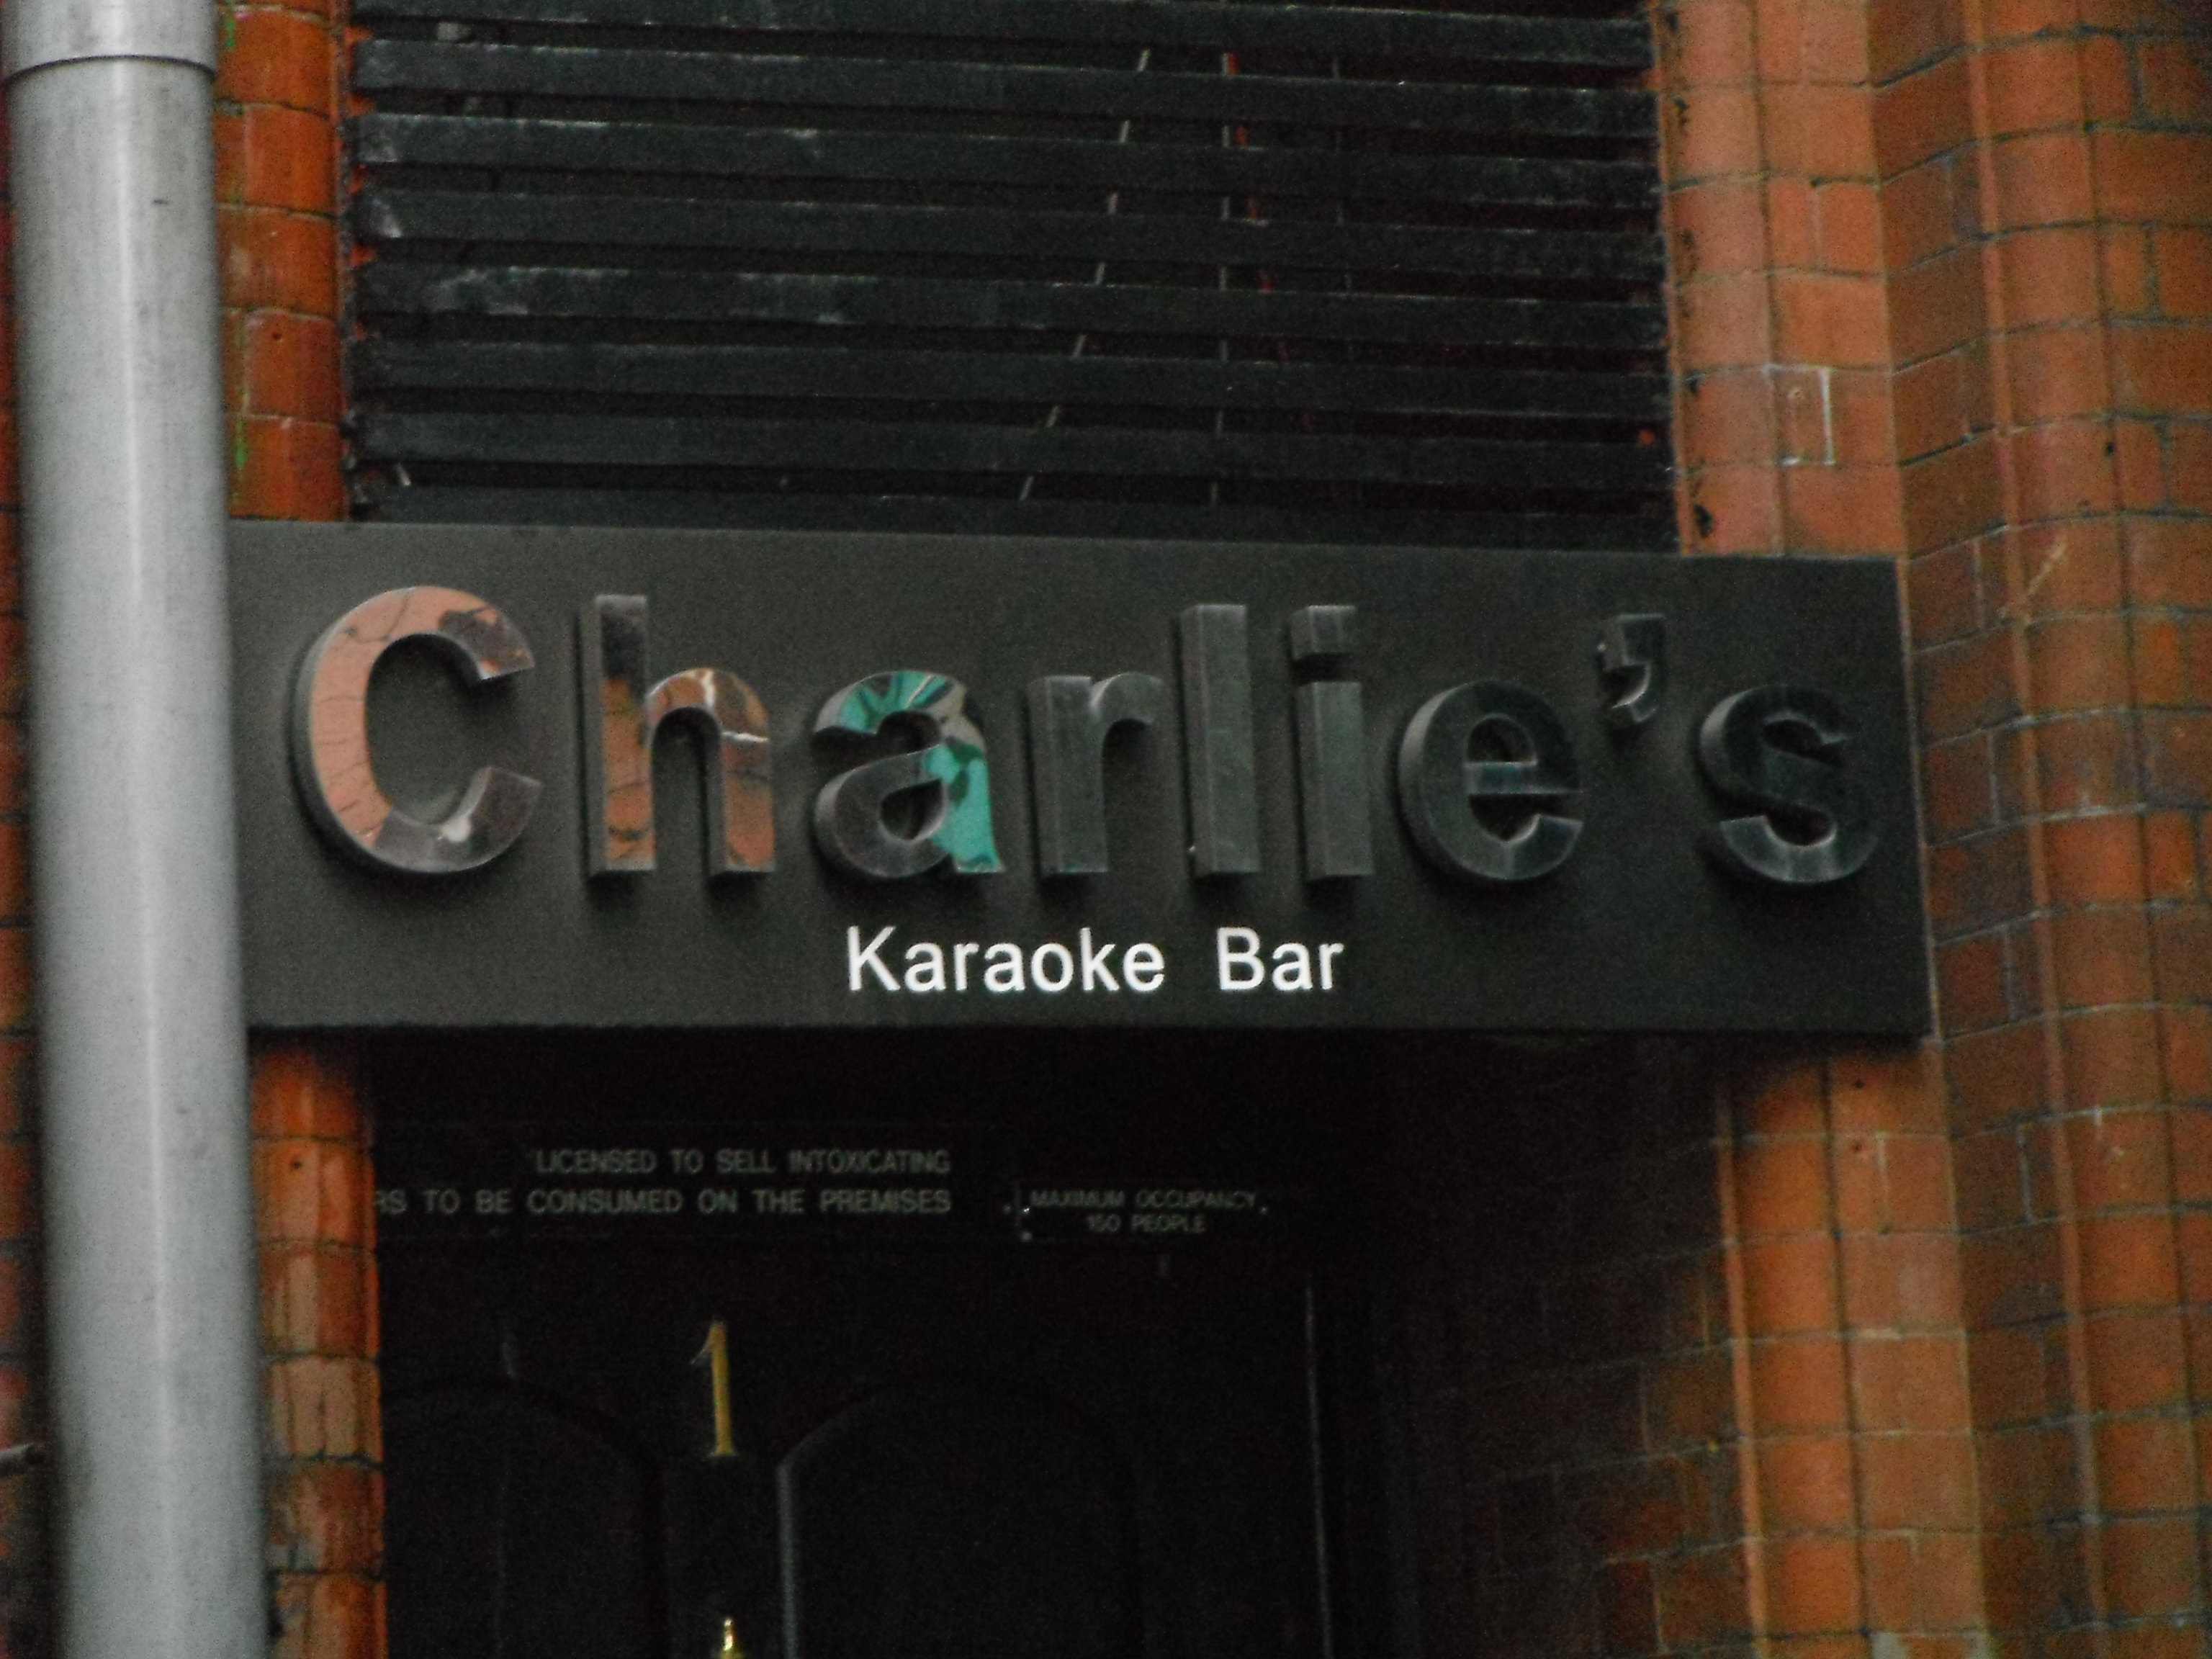 Photo taken by me – Charlie's Bar, Manchester